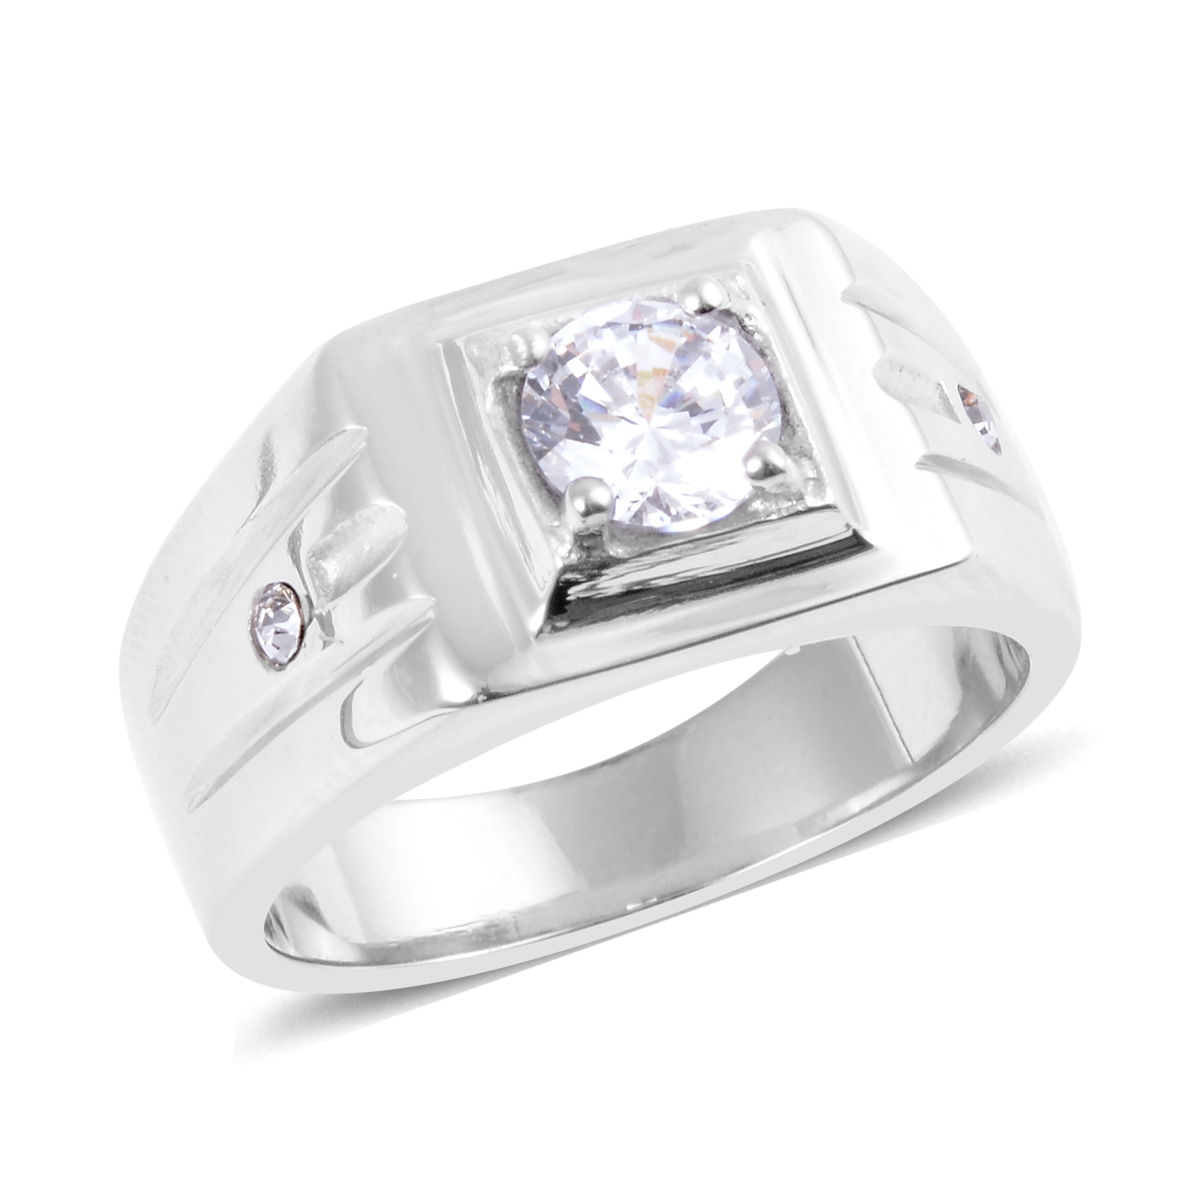 Simulated Diamond Ring in Stainless Steel (Size 13.0) 1.55 ctw